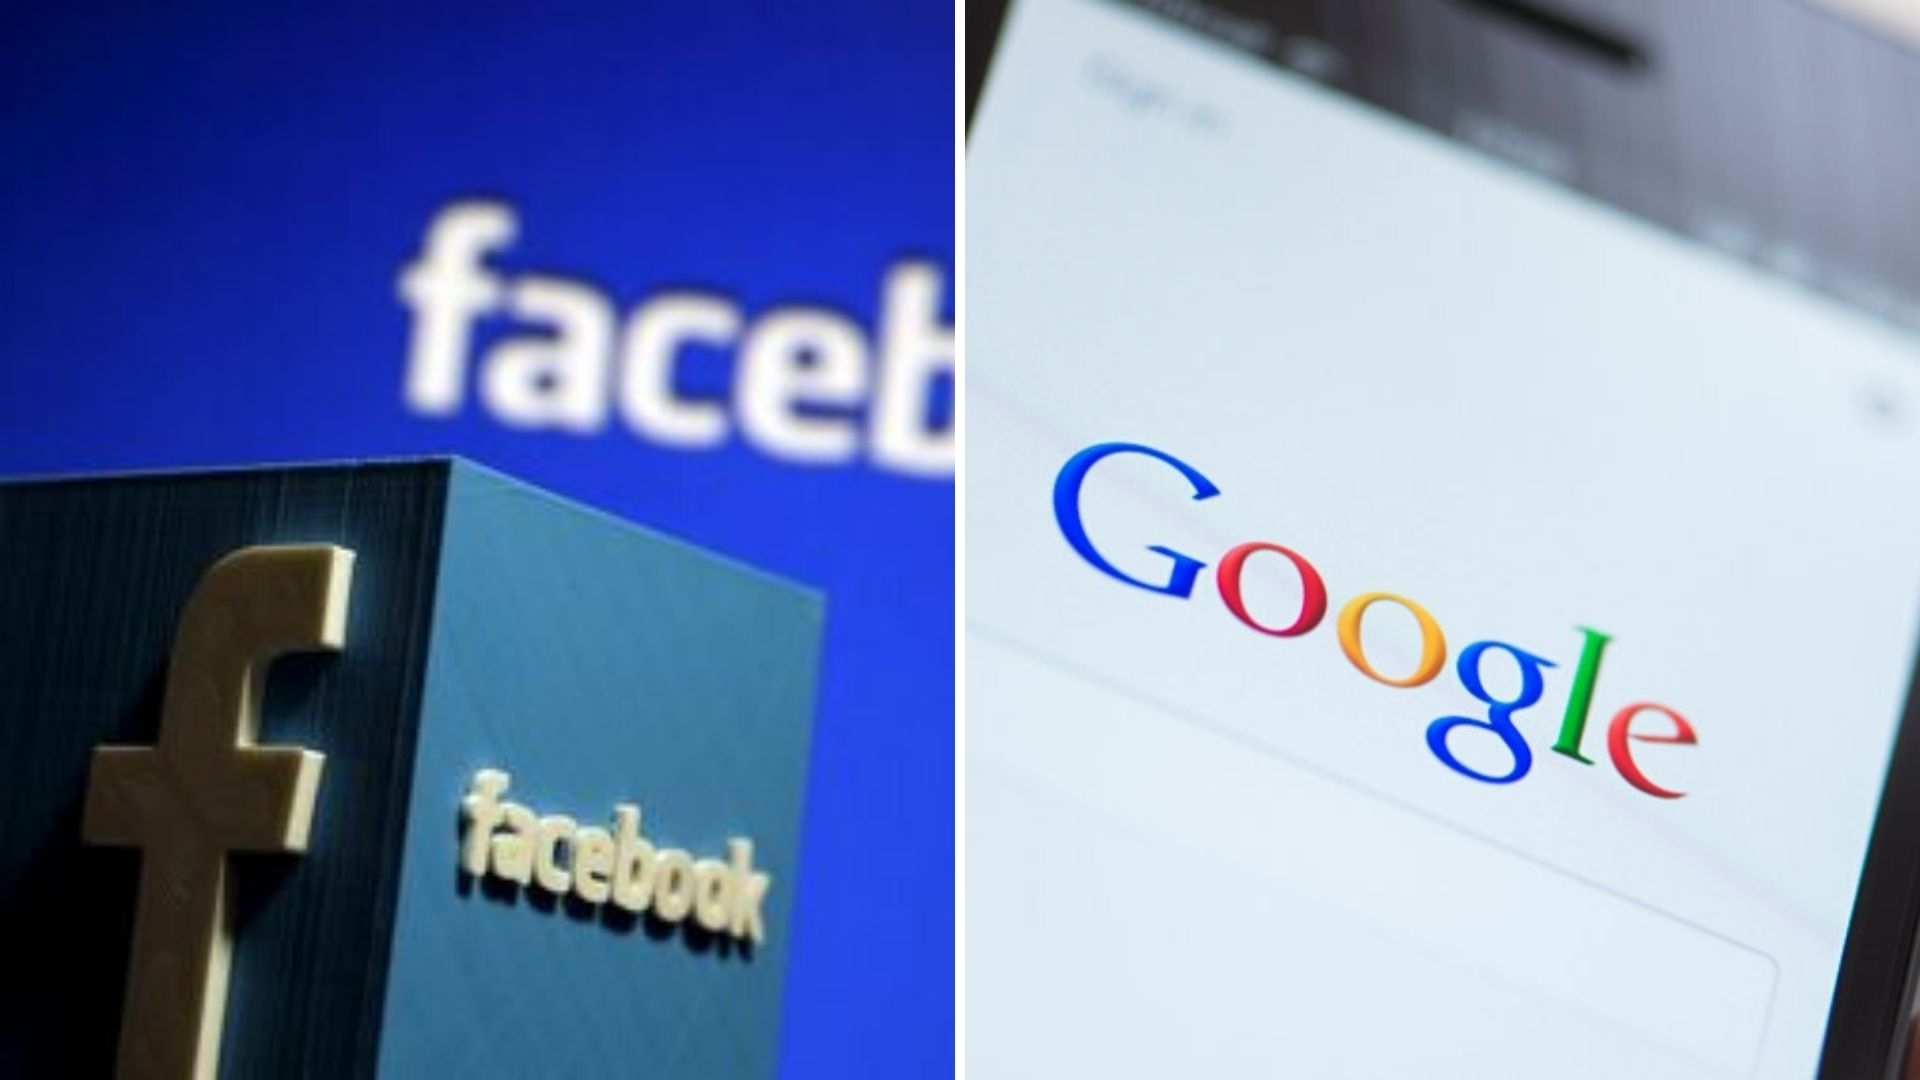 Facebook, Google in Trouble? EU Probing Data Usage by Tech Giants